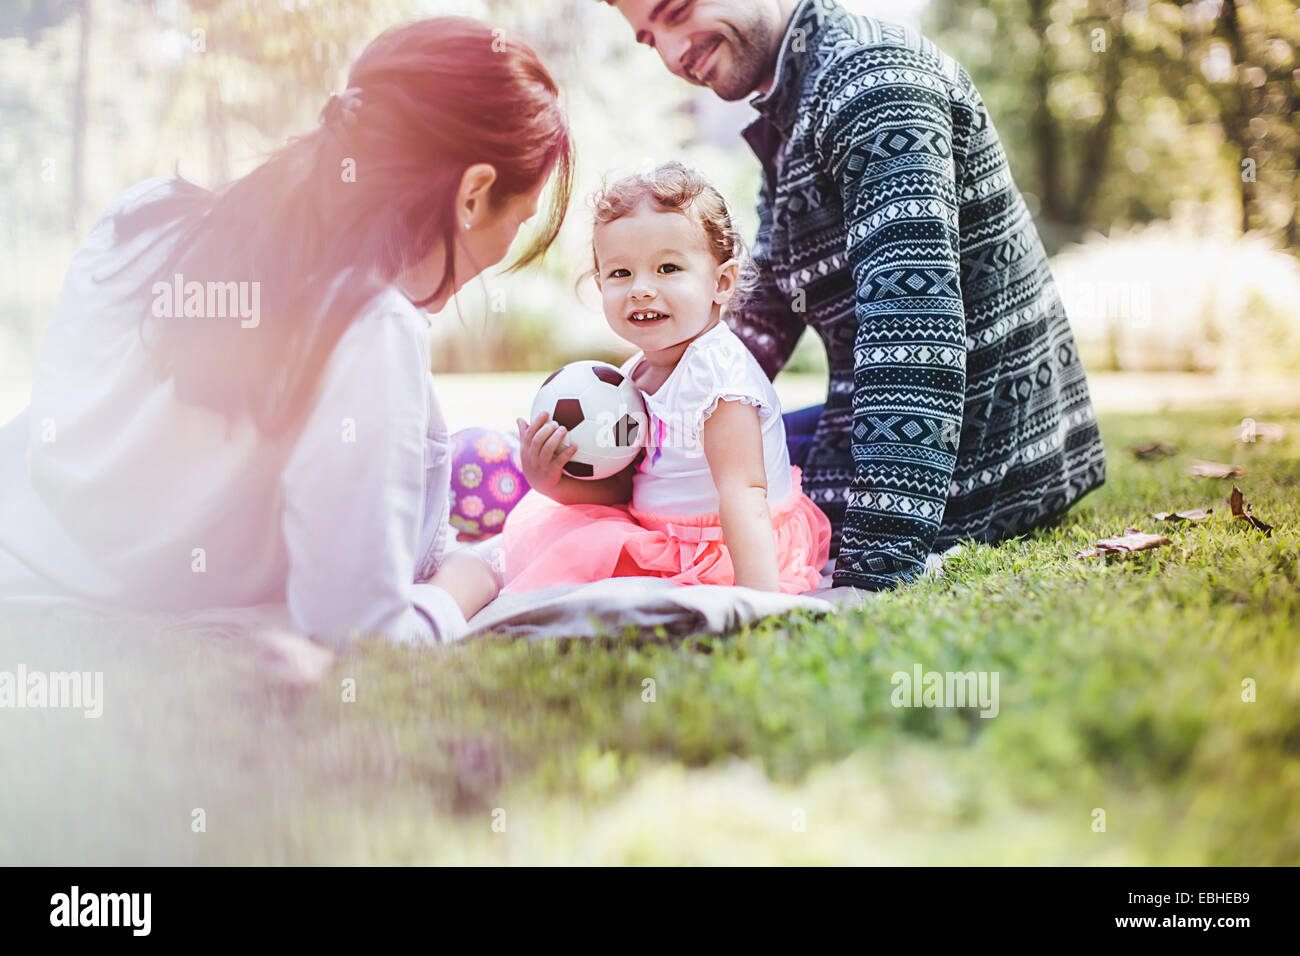 Parents and daughter playing in garden - Stock Image